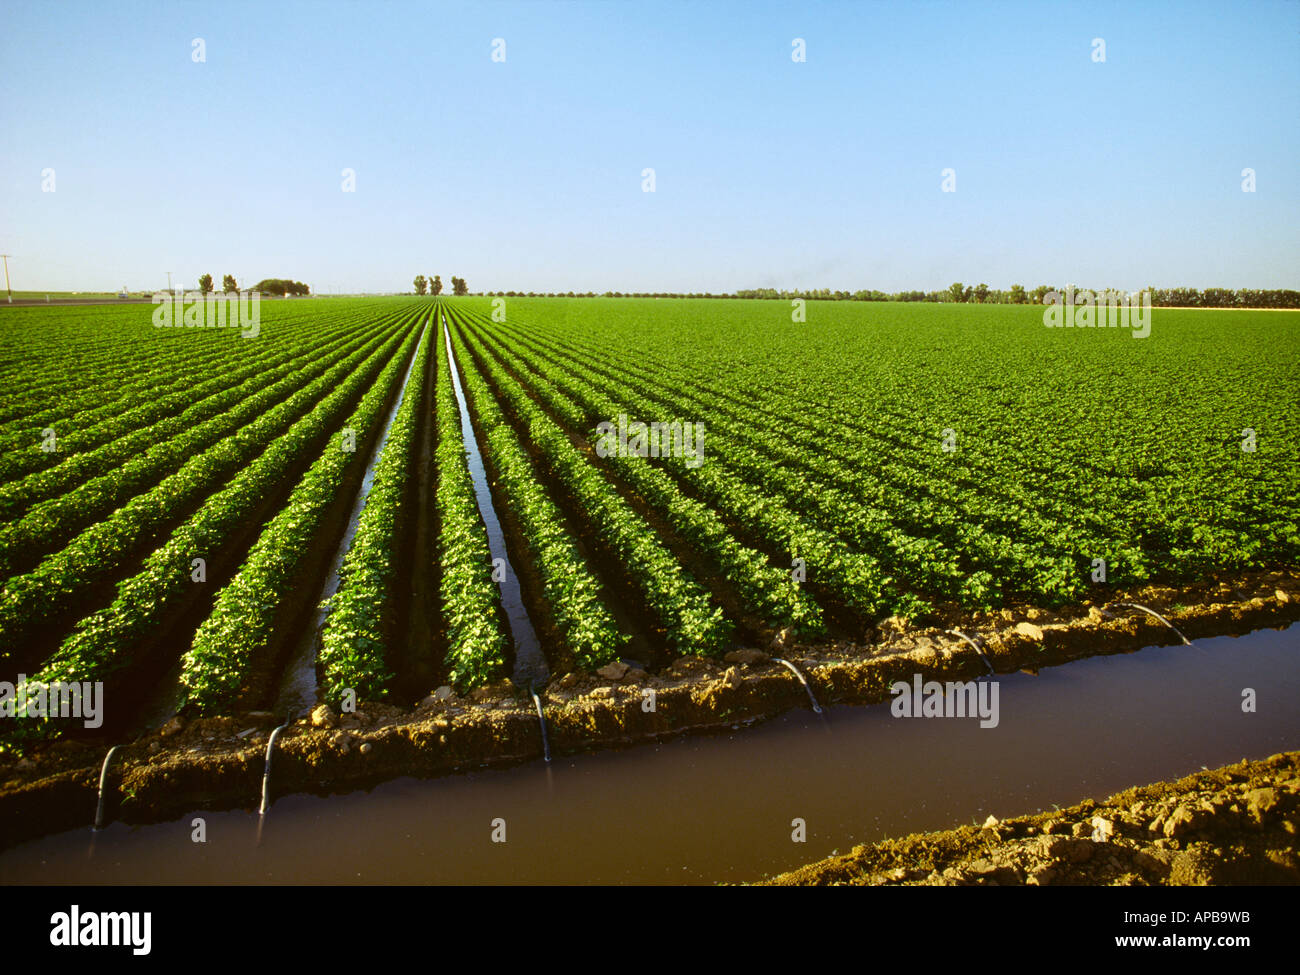 Agricultural Irrigation Canal : Agriculture mid growth cotton field being furrow